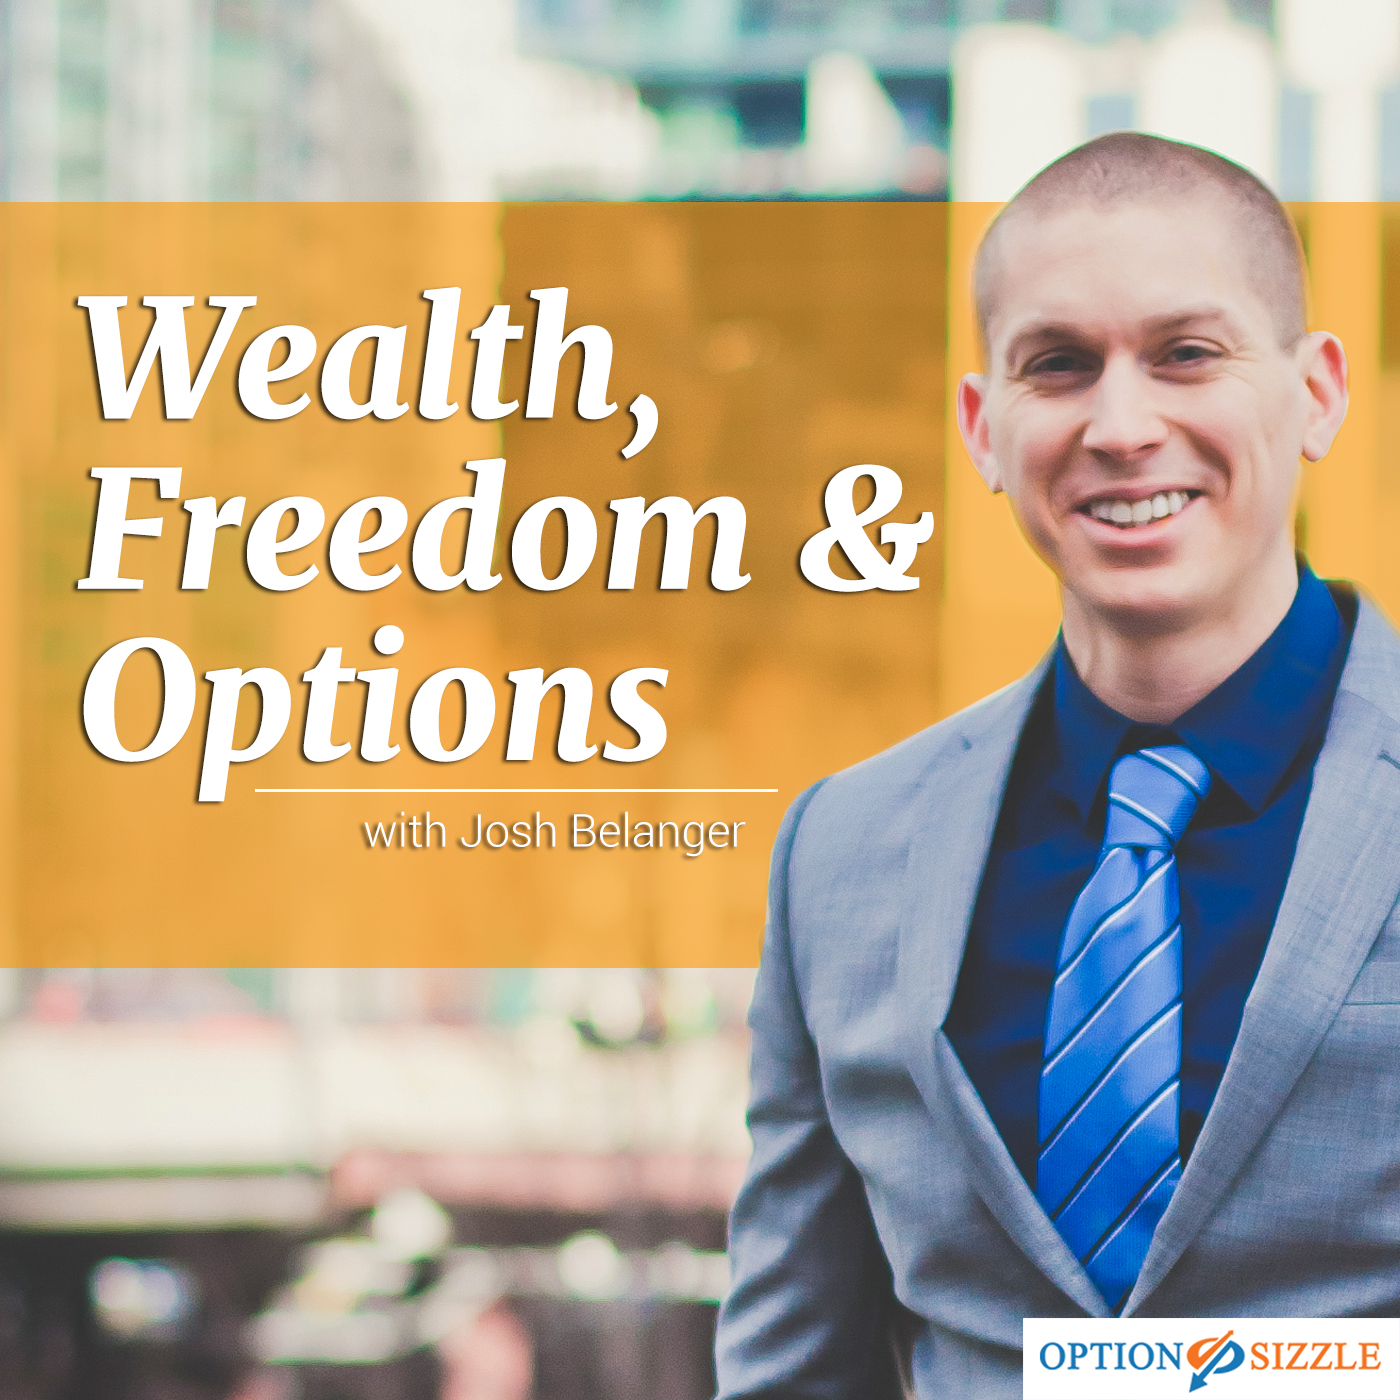 Wealth, Freedom & Options With Joshua Belanger